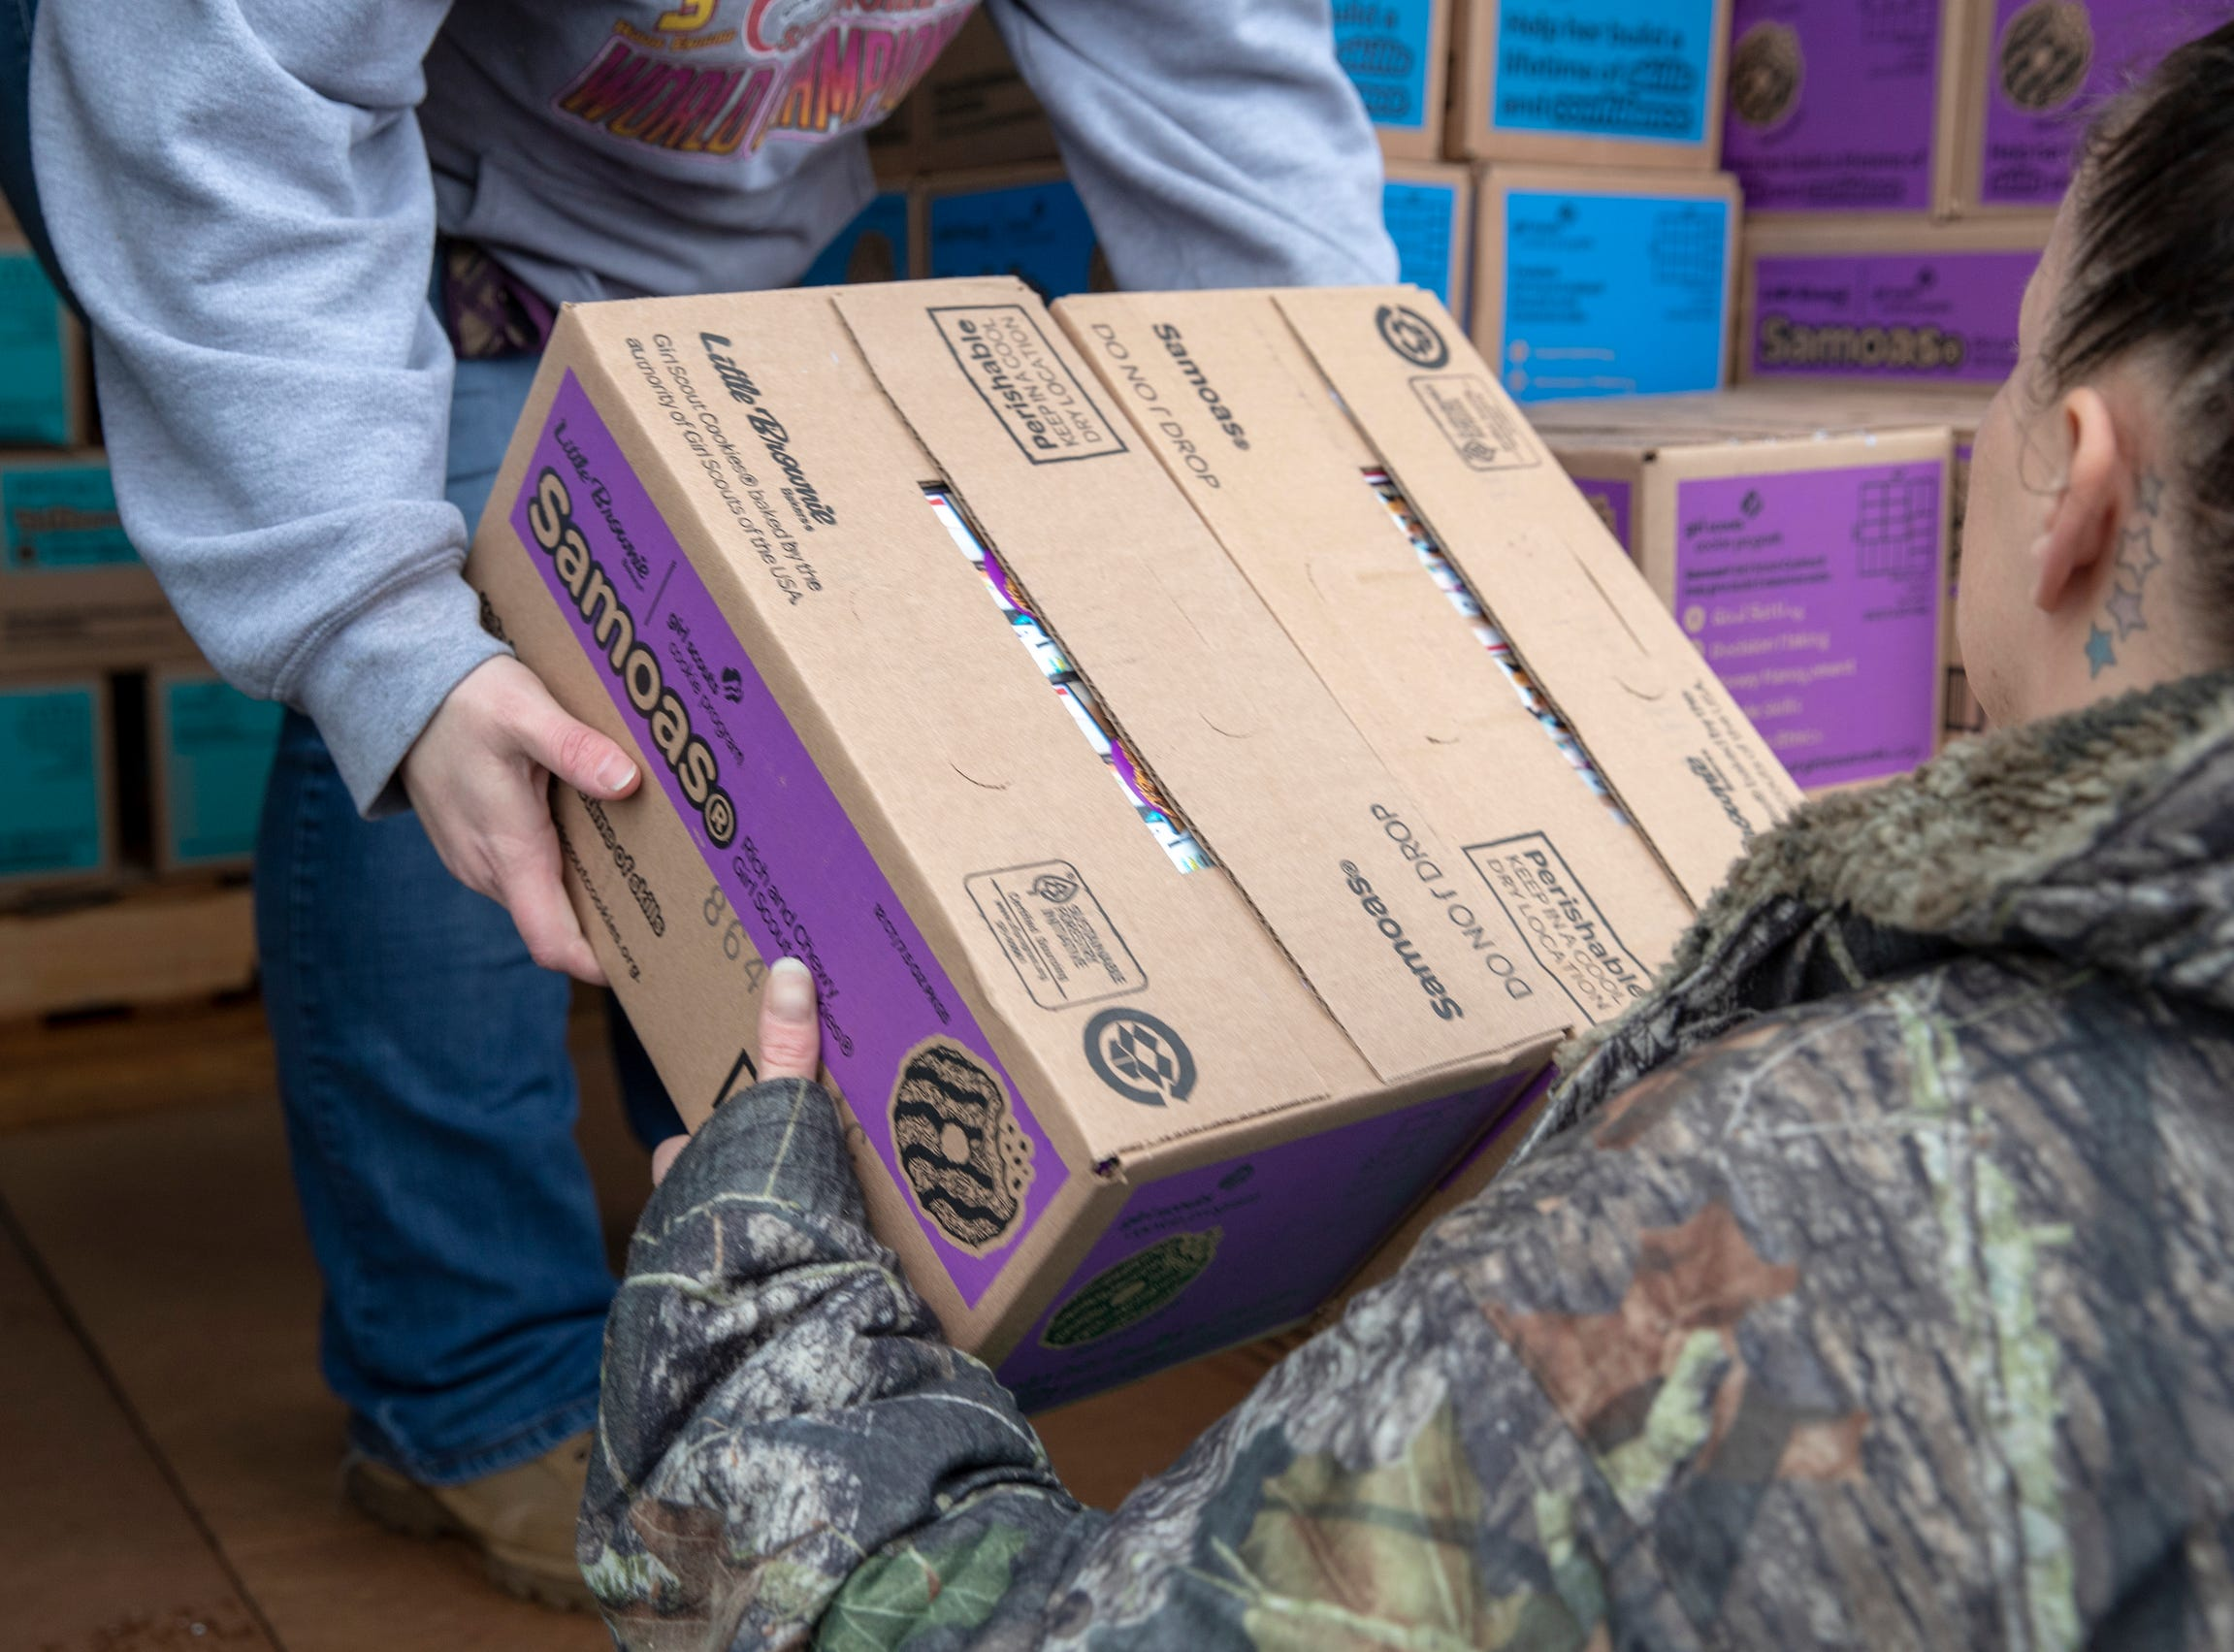 Samoas being loaded up into a car during distribution for Girl Scout Cookies in Indianapolis, Wednesday, Feb. 6, 2019. The cookies will start to appear locally on the weekend, and should last into mid-March.